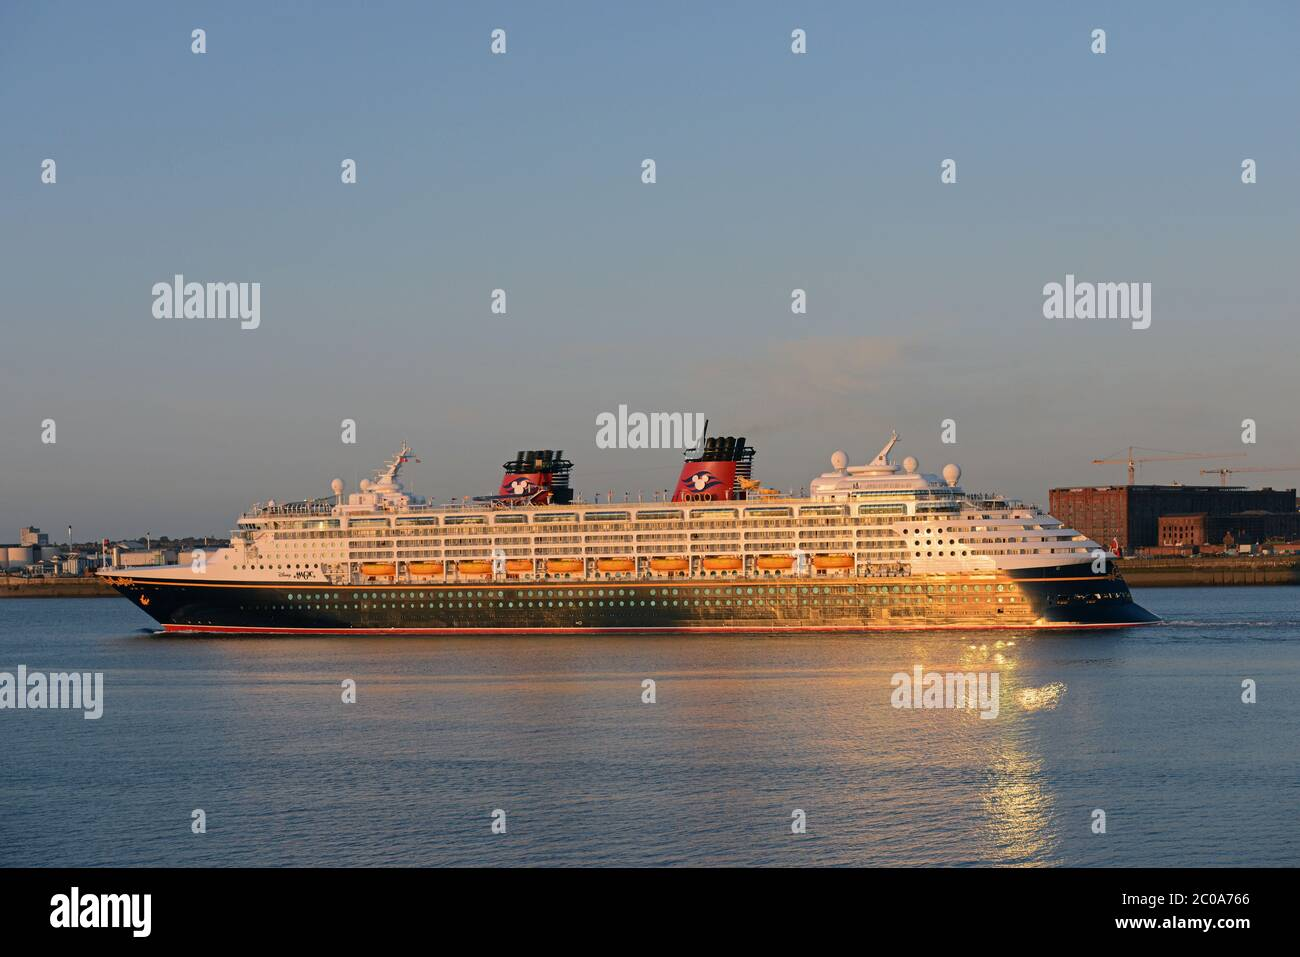 DISNEY MAGIC in the RIVER MERSEY at Liverpool passing the famous STANLEY DOCK building, LIVERPOOL, ENGLAND Stock Photo